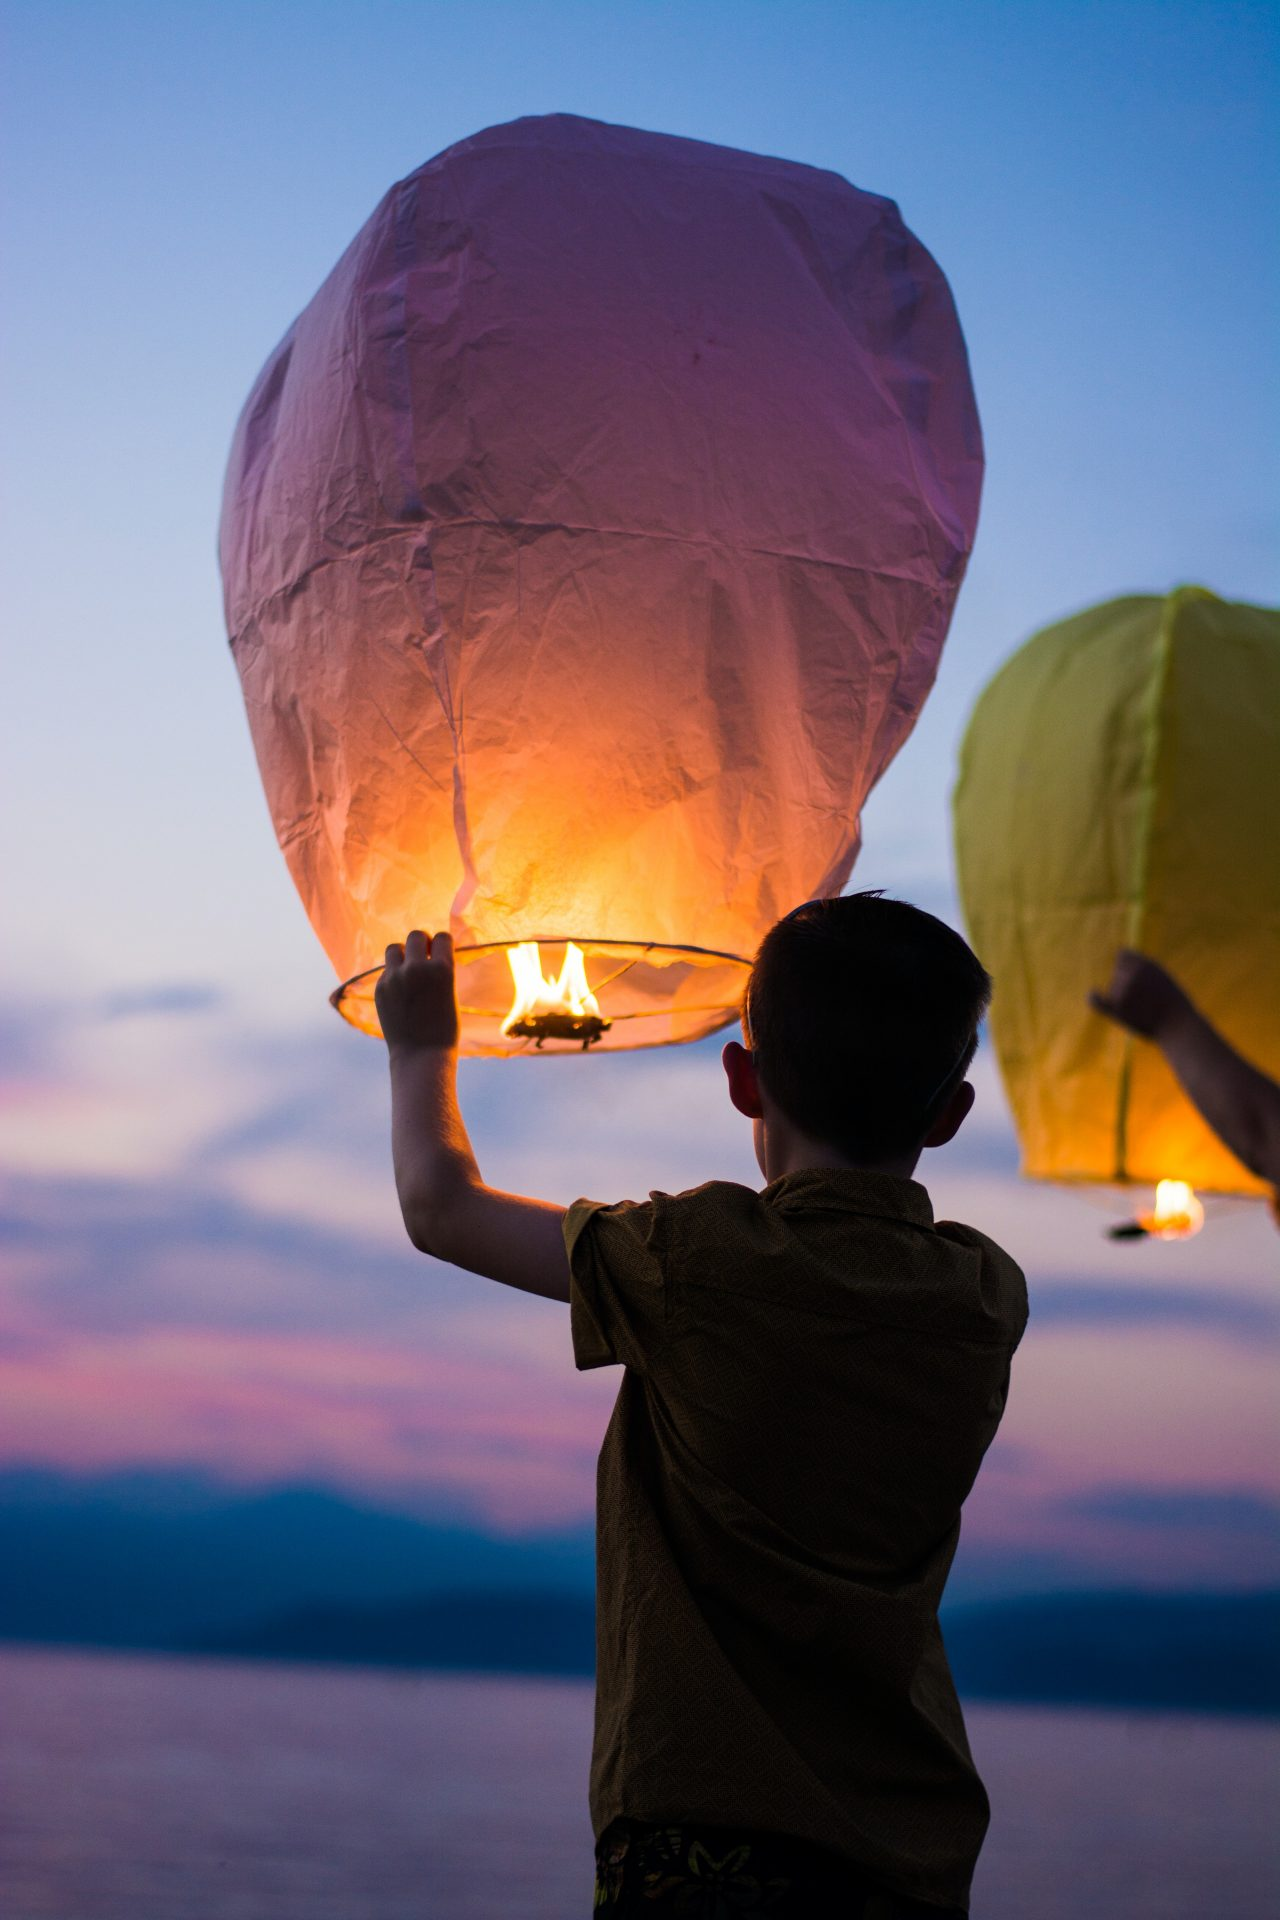 Things-Shit-to-let-go-right-now-new-year-letting-go-surrender-spiritual-growth-balloon-fire